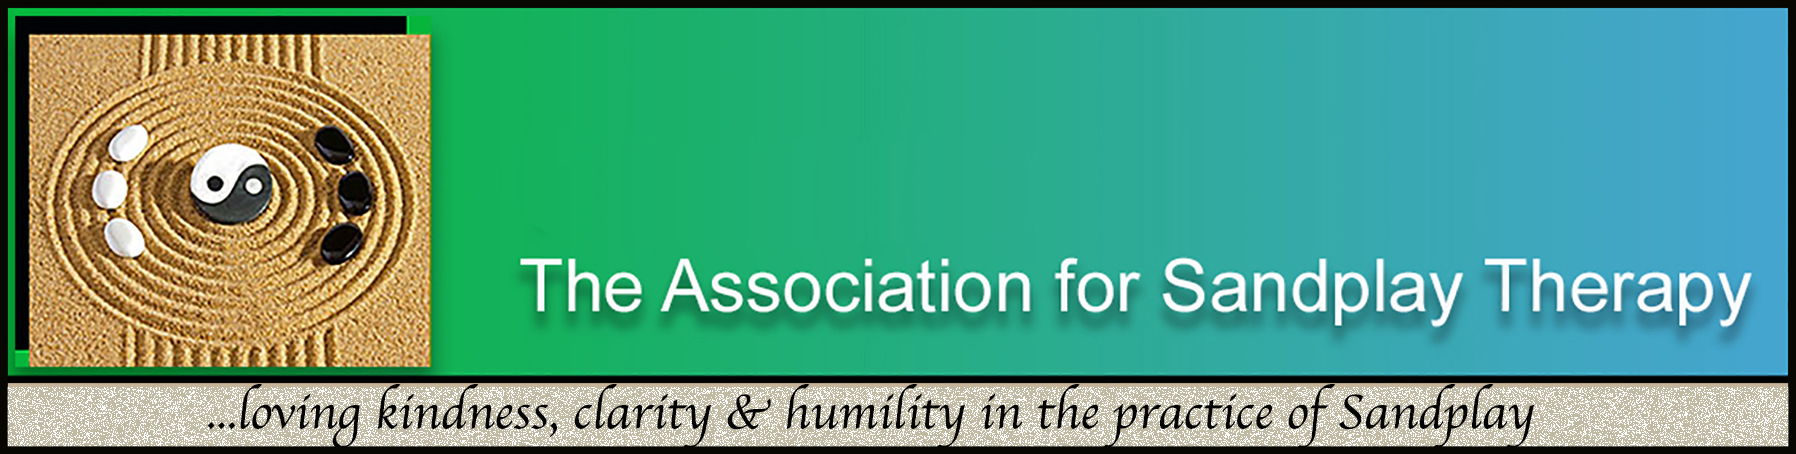 The Association for Sandplay Therapy